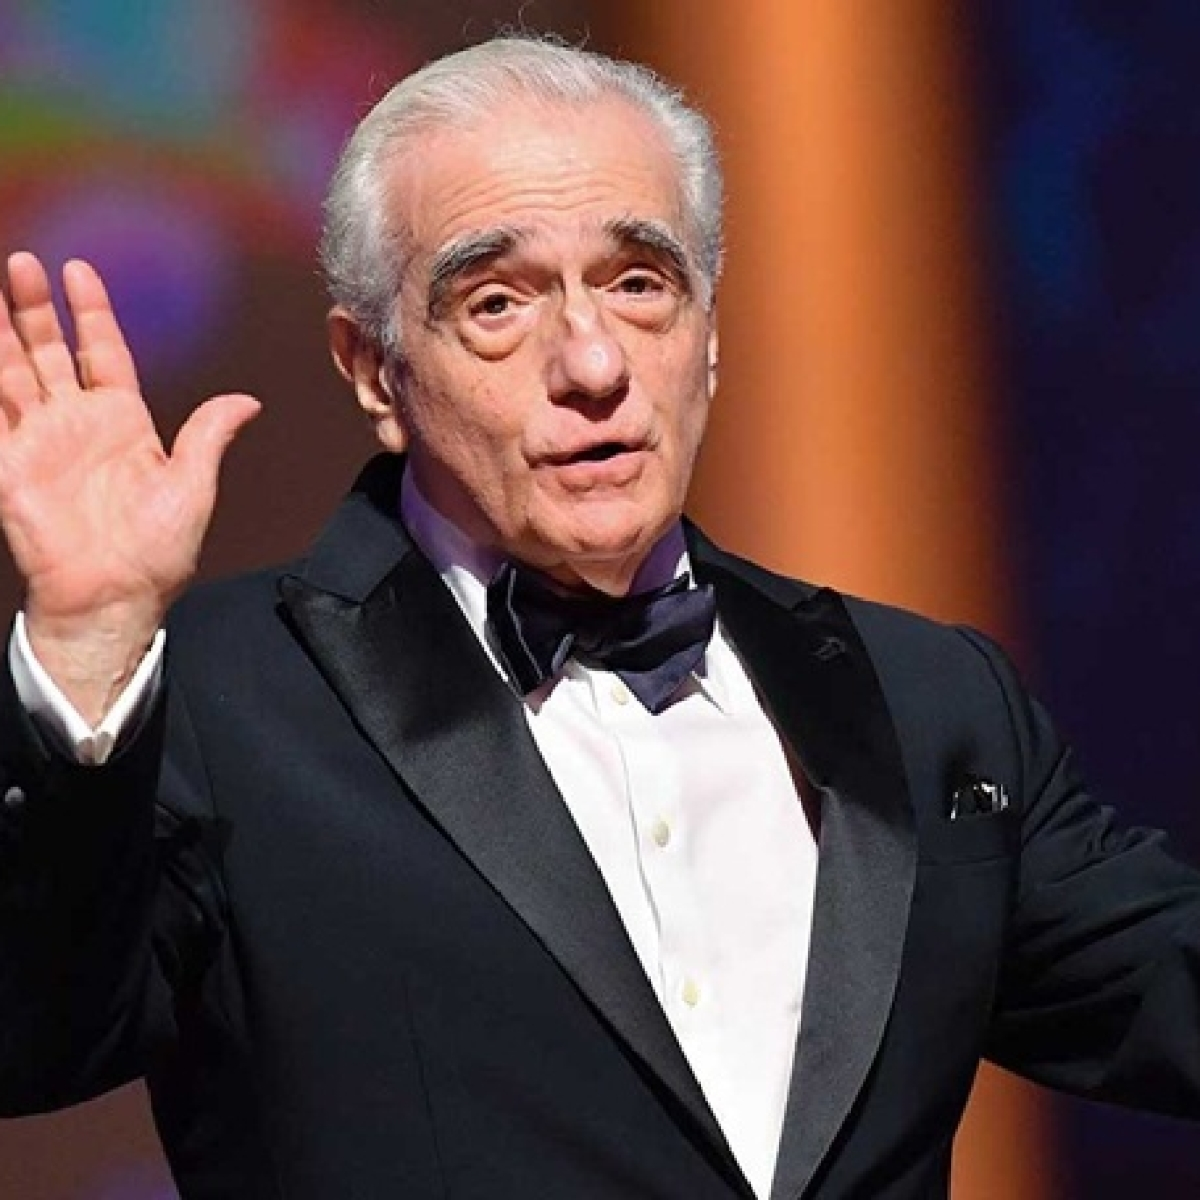 Martin Scorsese has only seen parts of 'Joker' not the whole movie